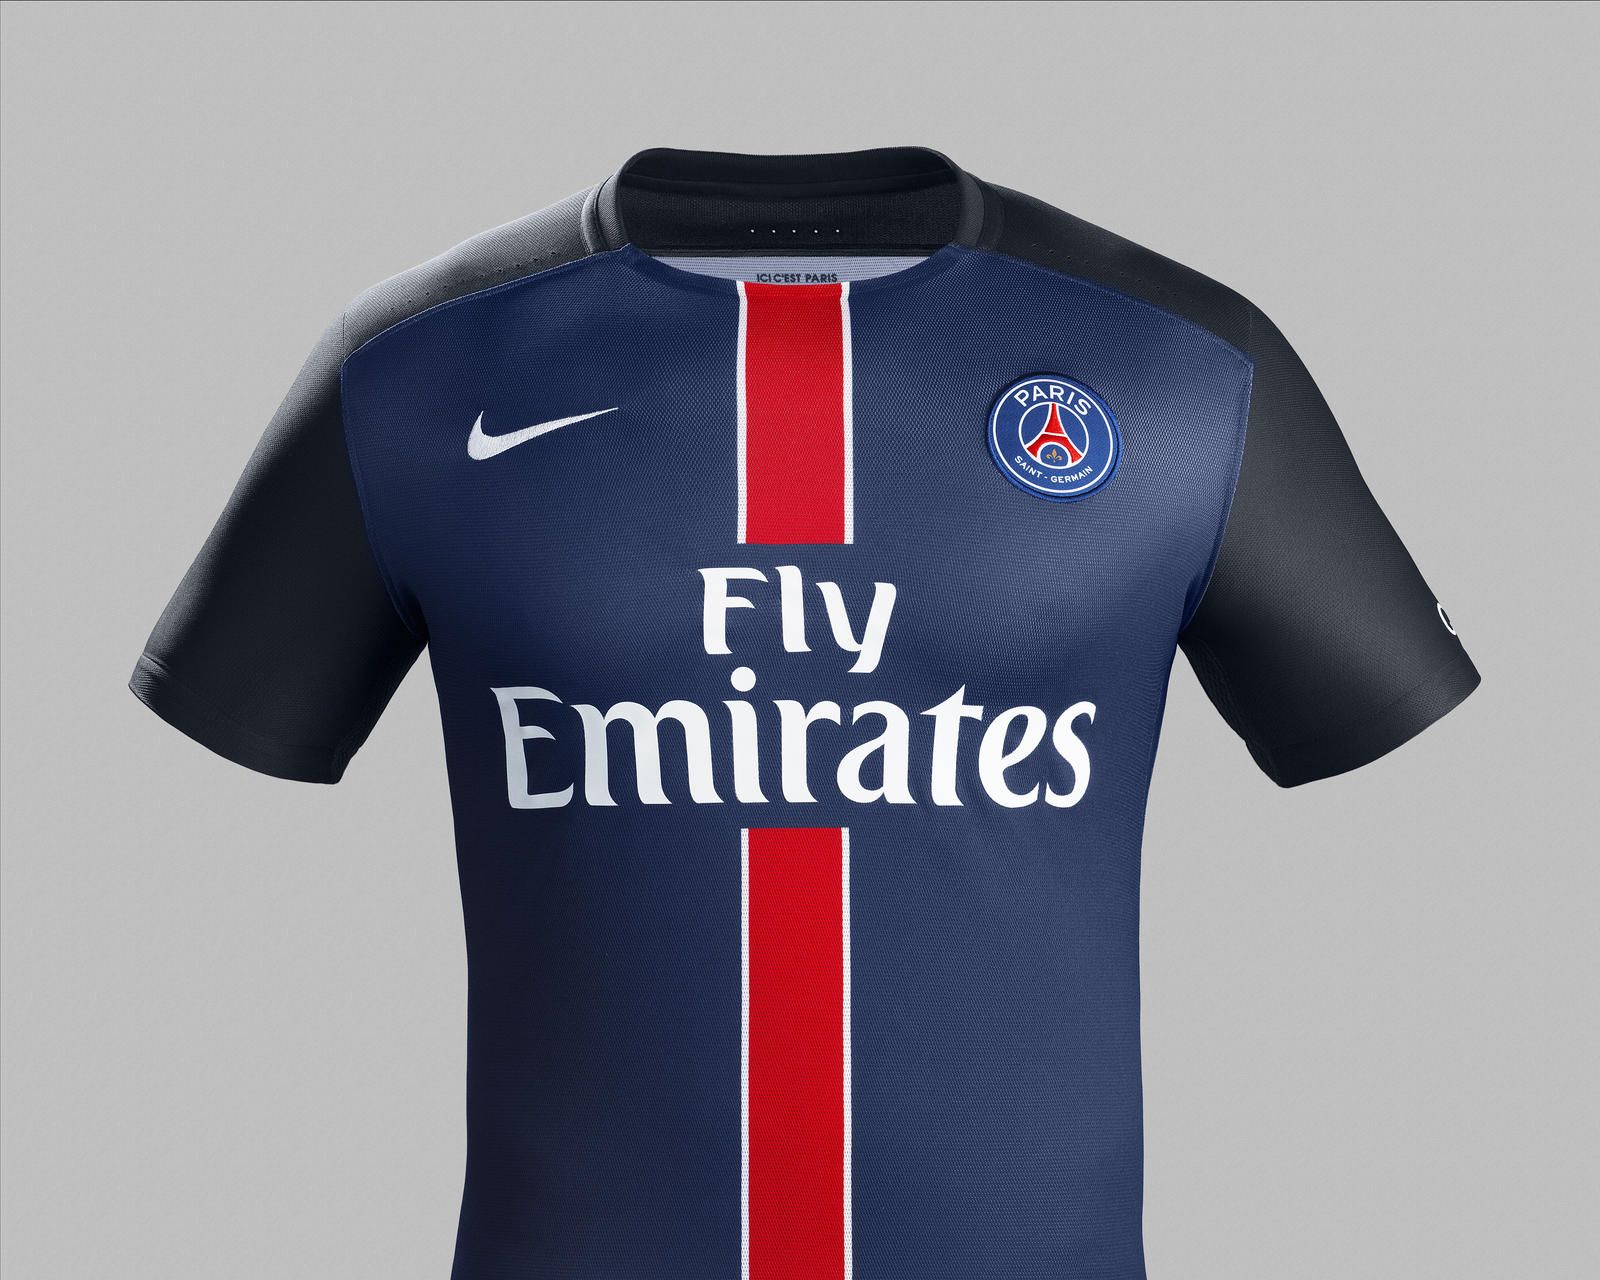 Psg Maillot Third Cl 16